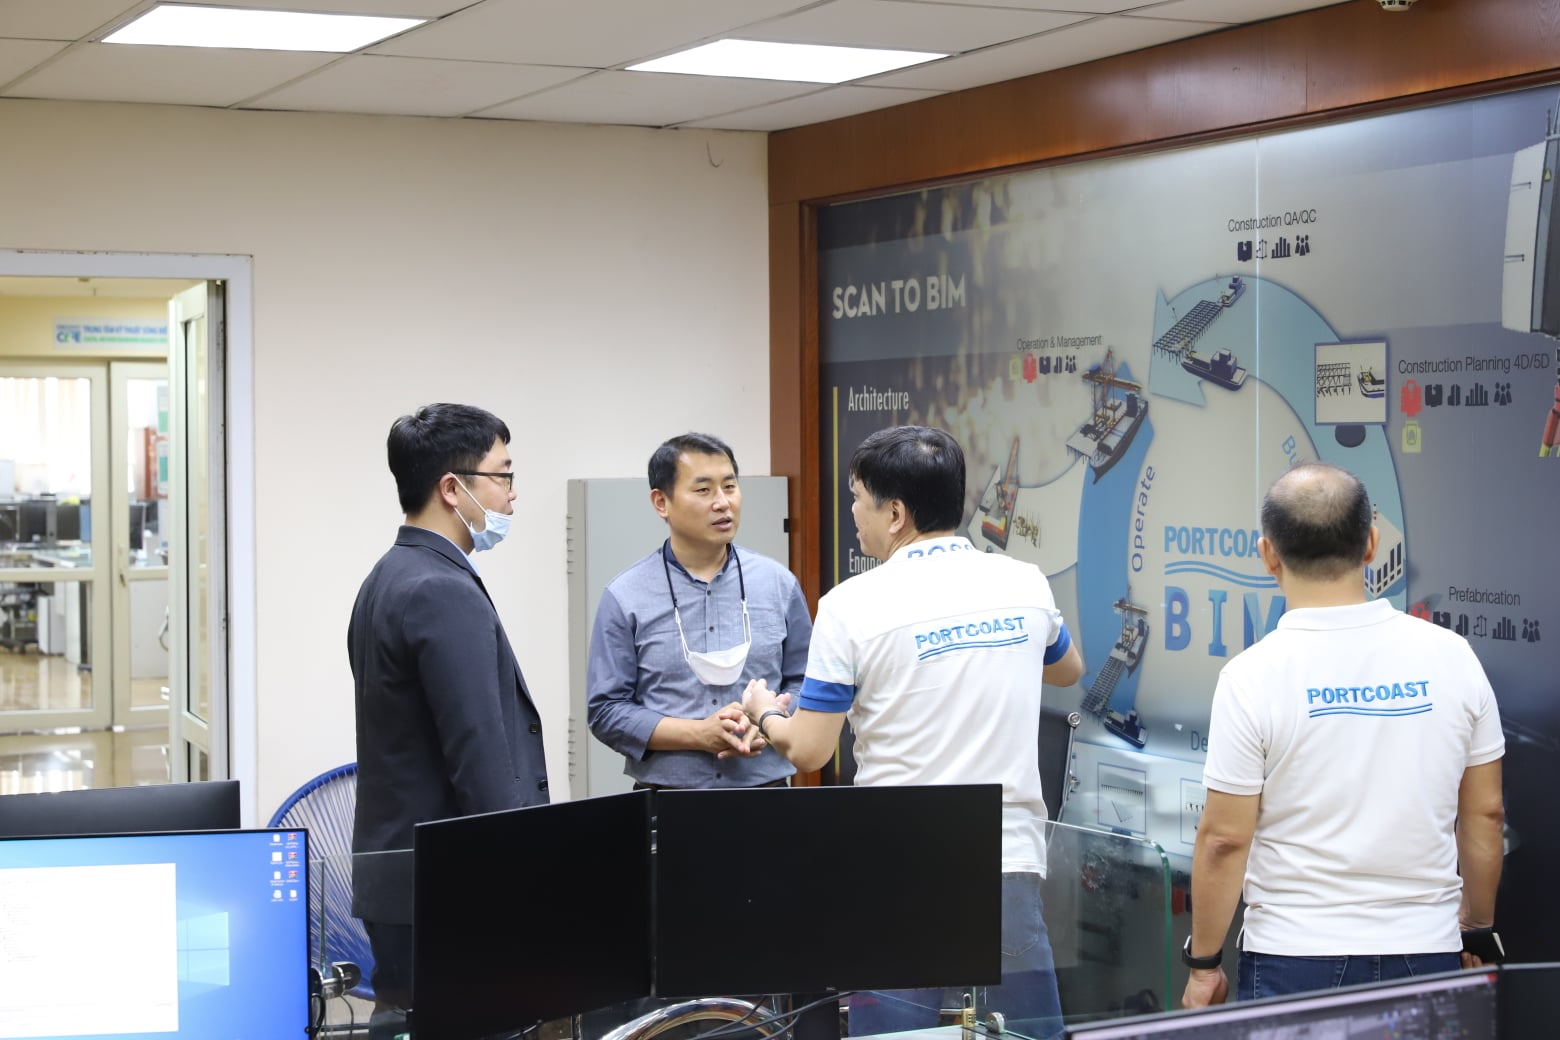 Welcome Huyndai Engineering & Construction Co., Ltd. to Portcoast's office